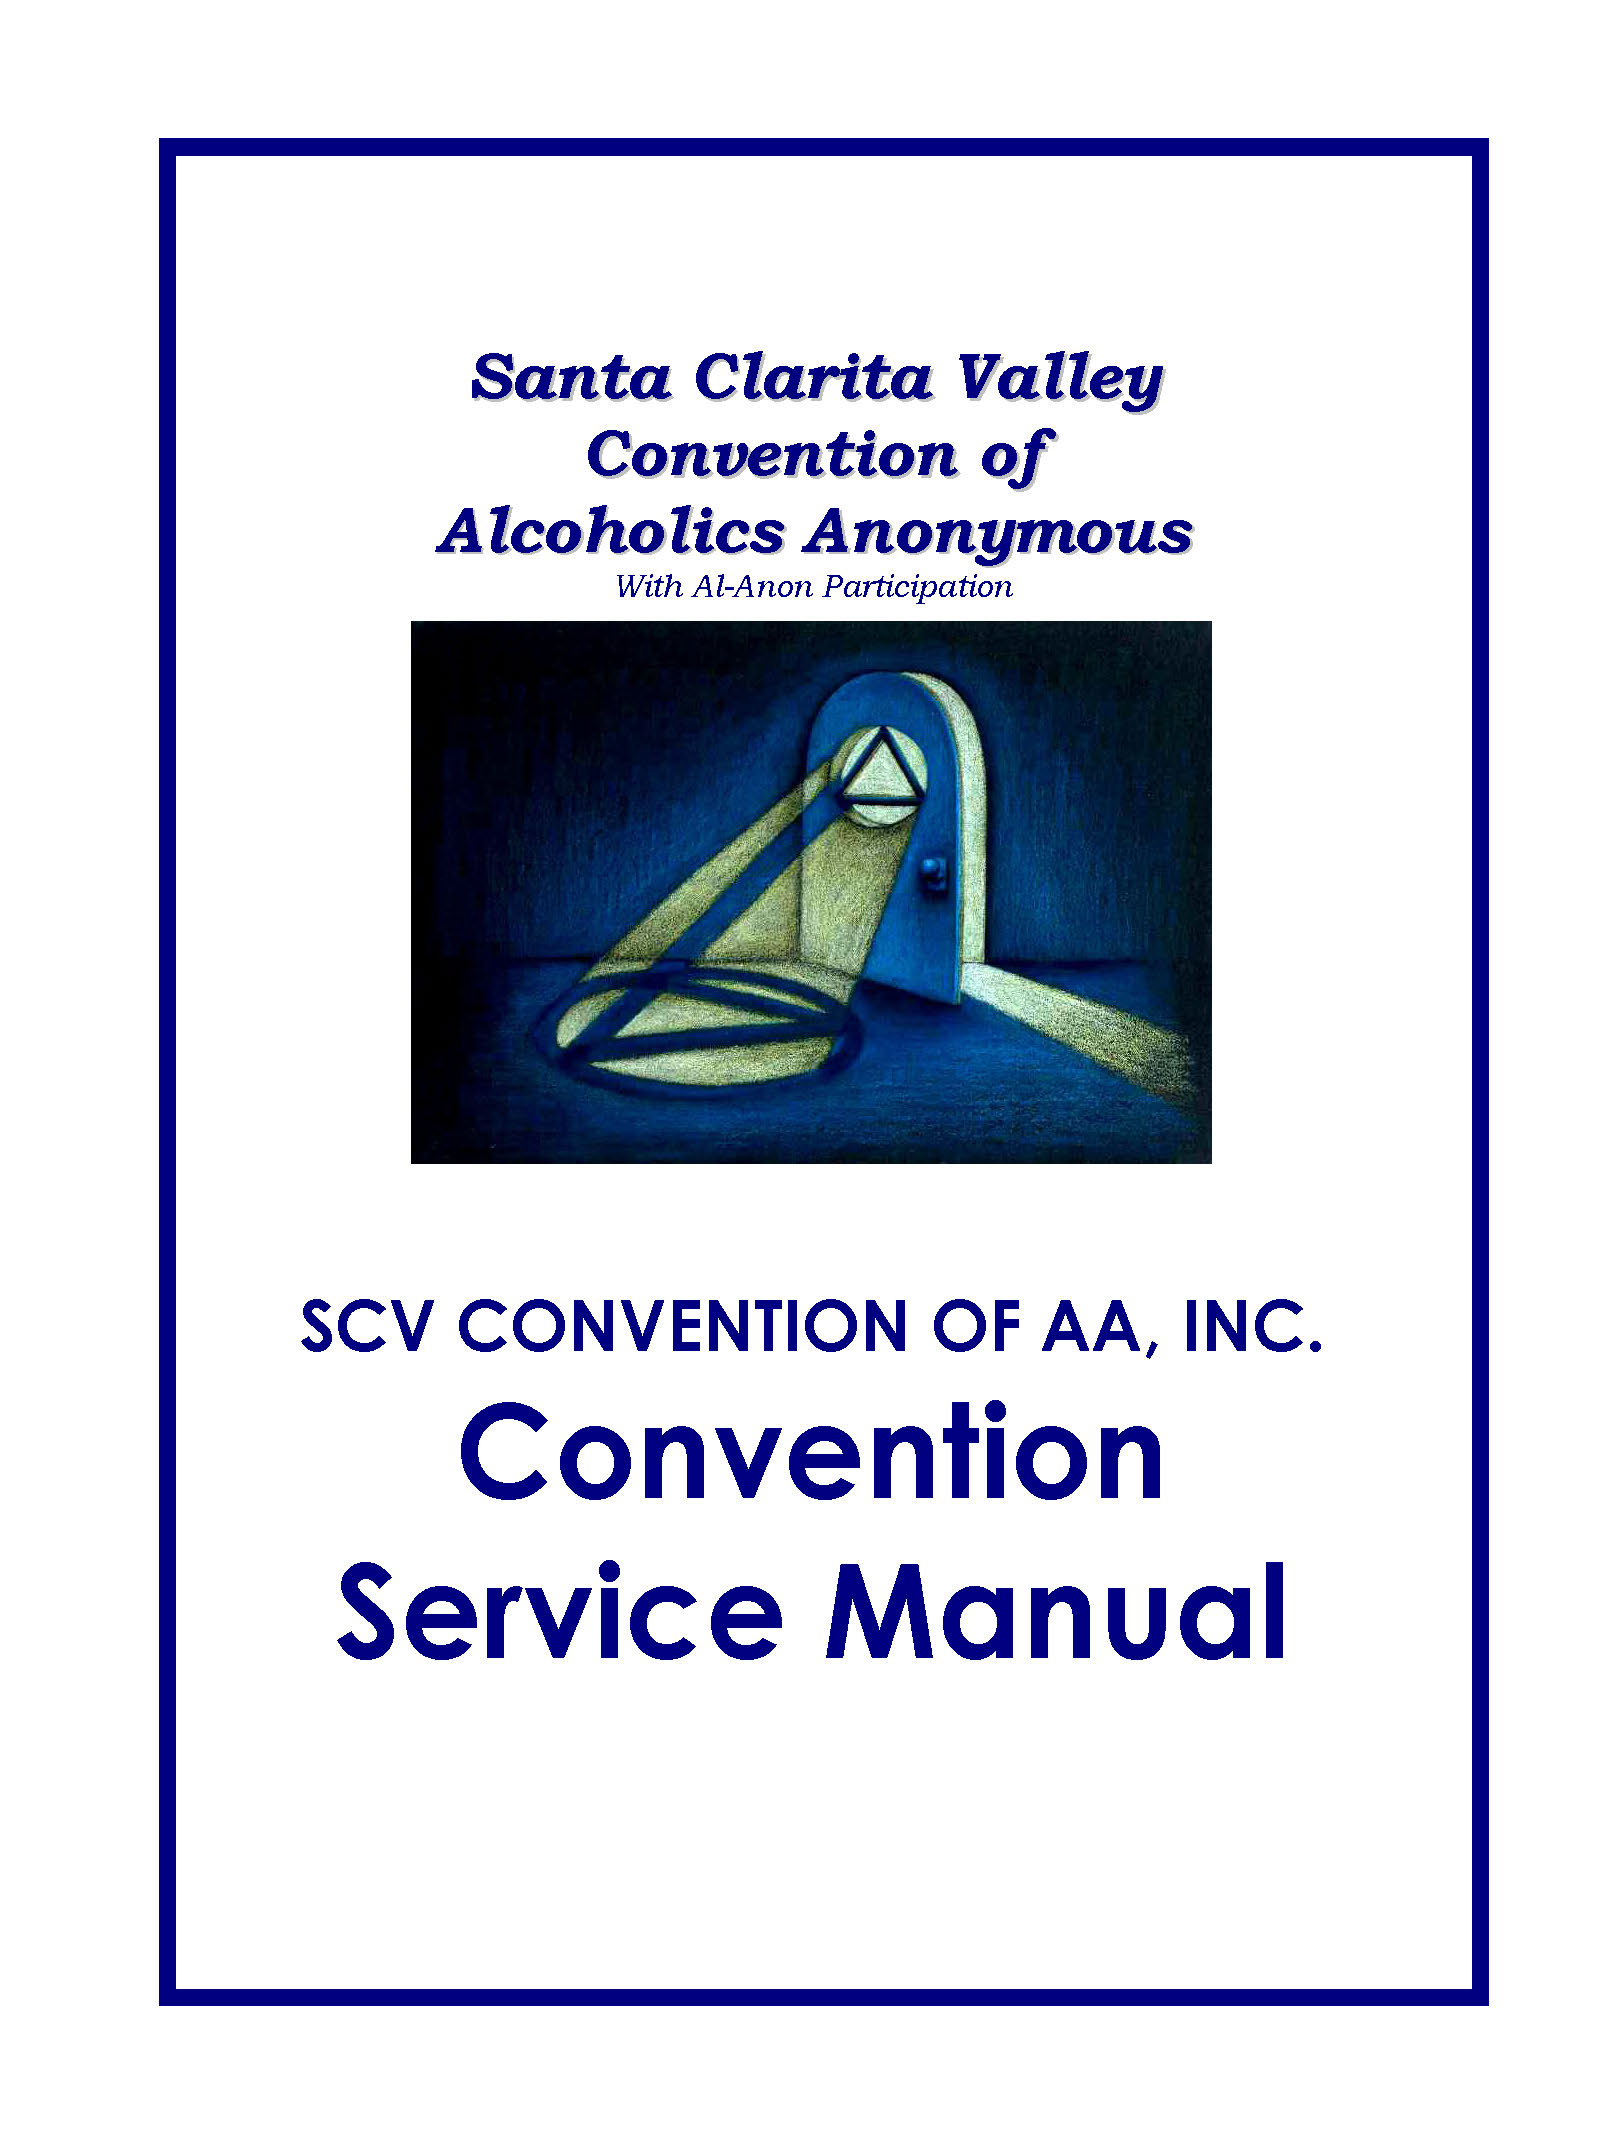 CONVENTION_SERVICE_MANUAL_1-2-08_Page_01.jpg